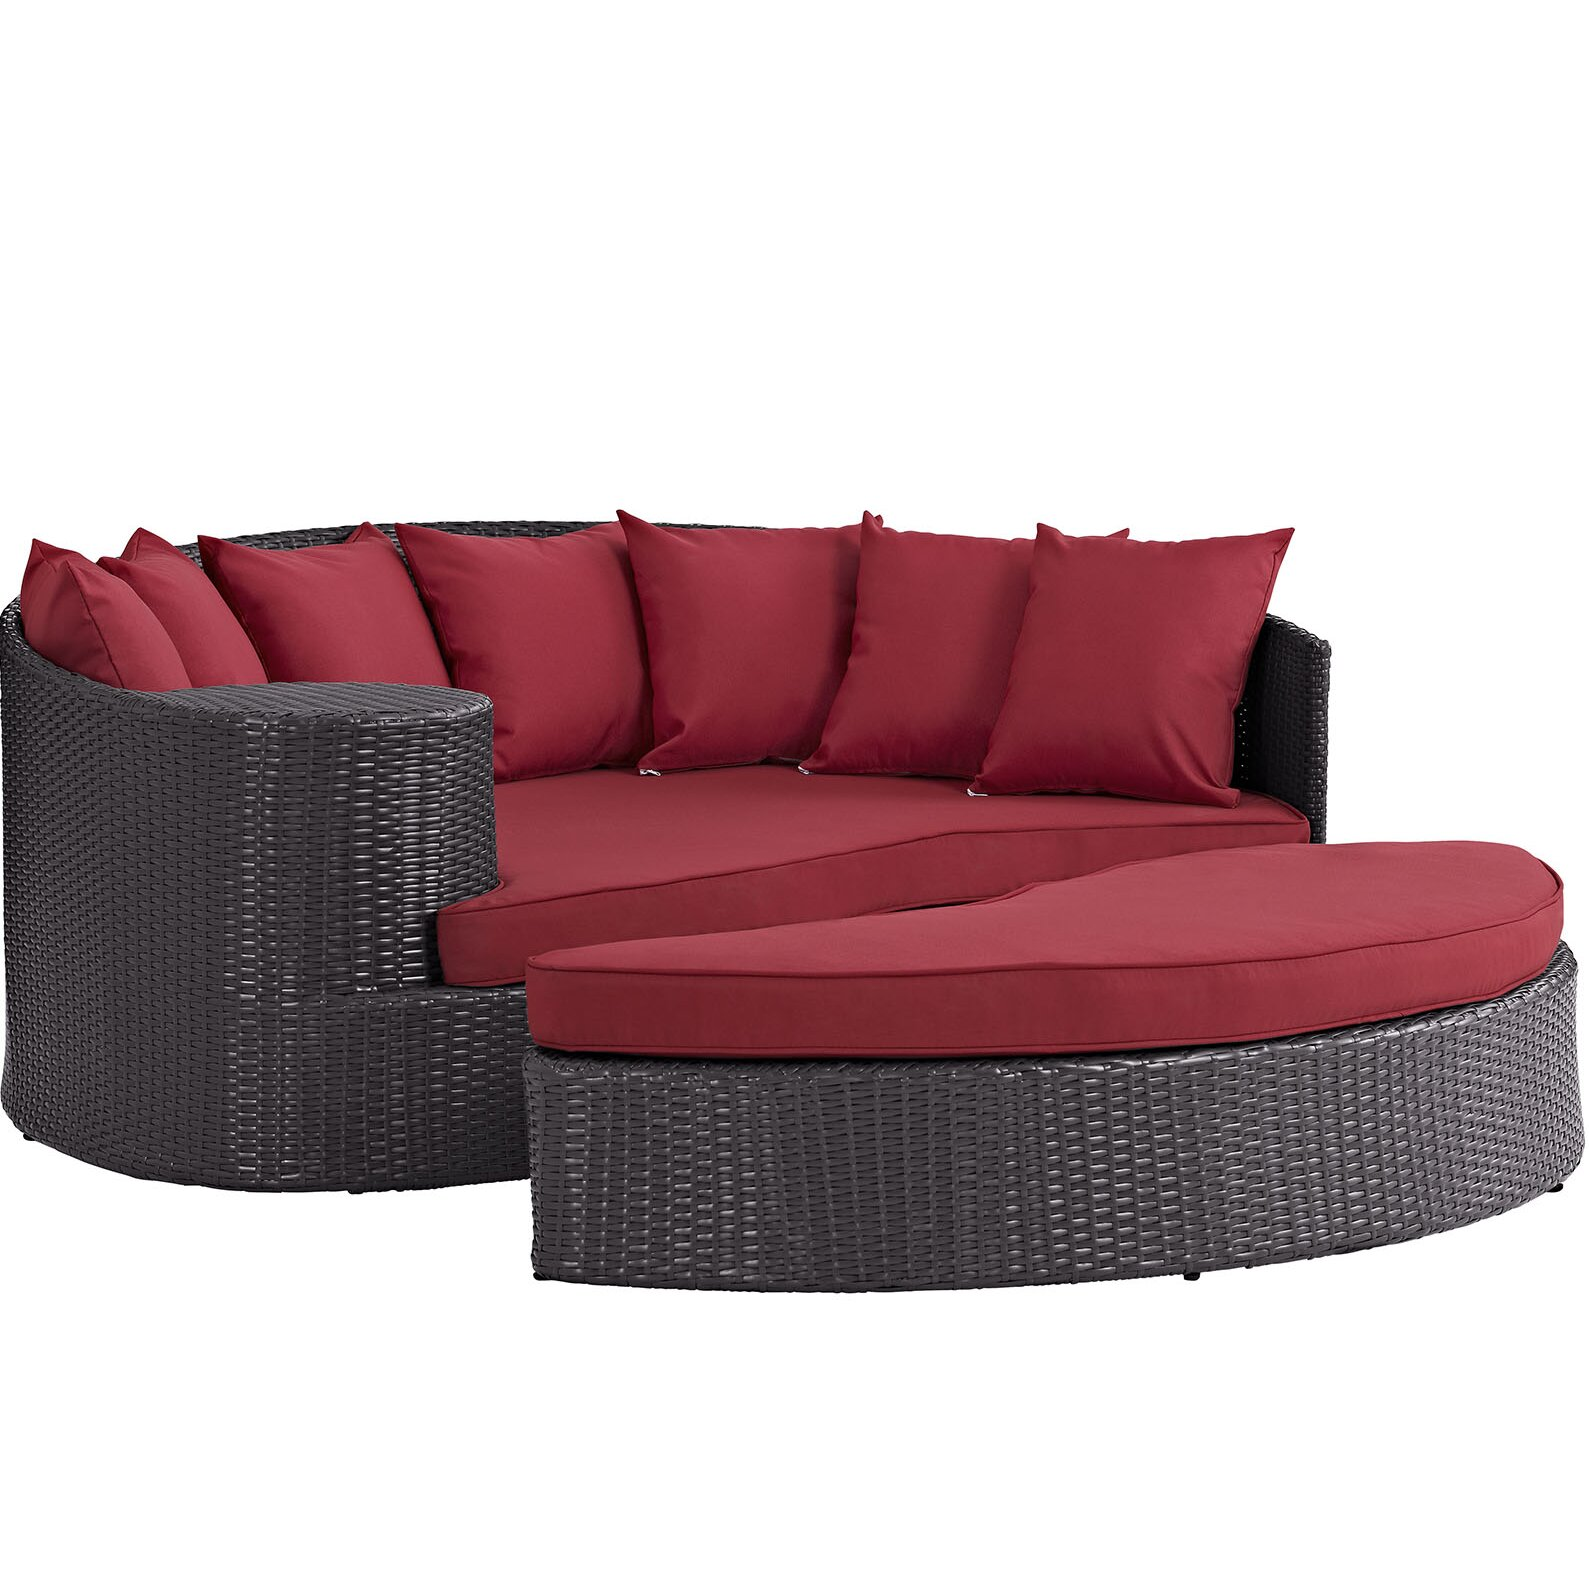 Modway Convene Outdoor Patio Daybed with Cushions